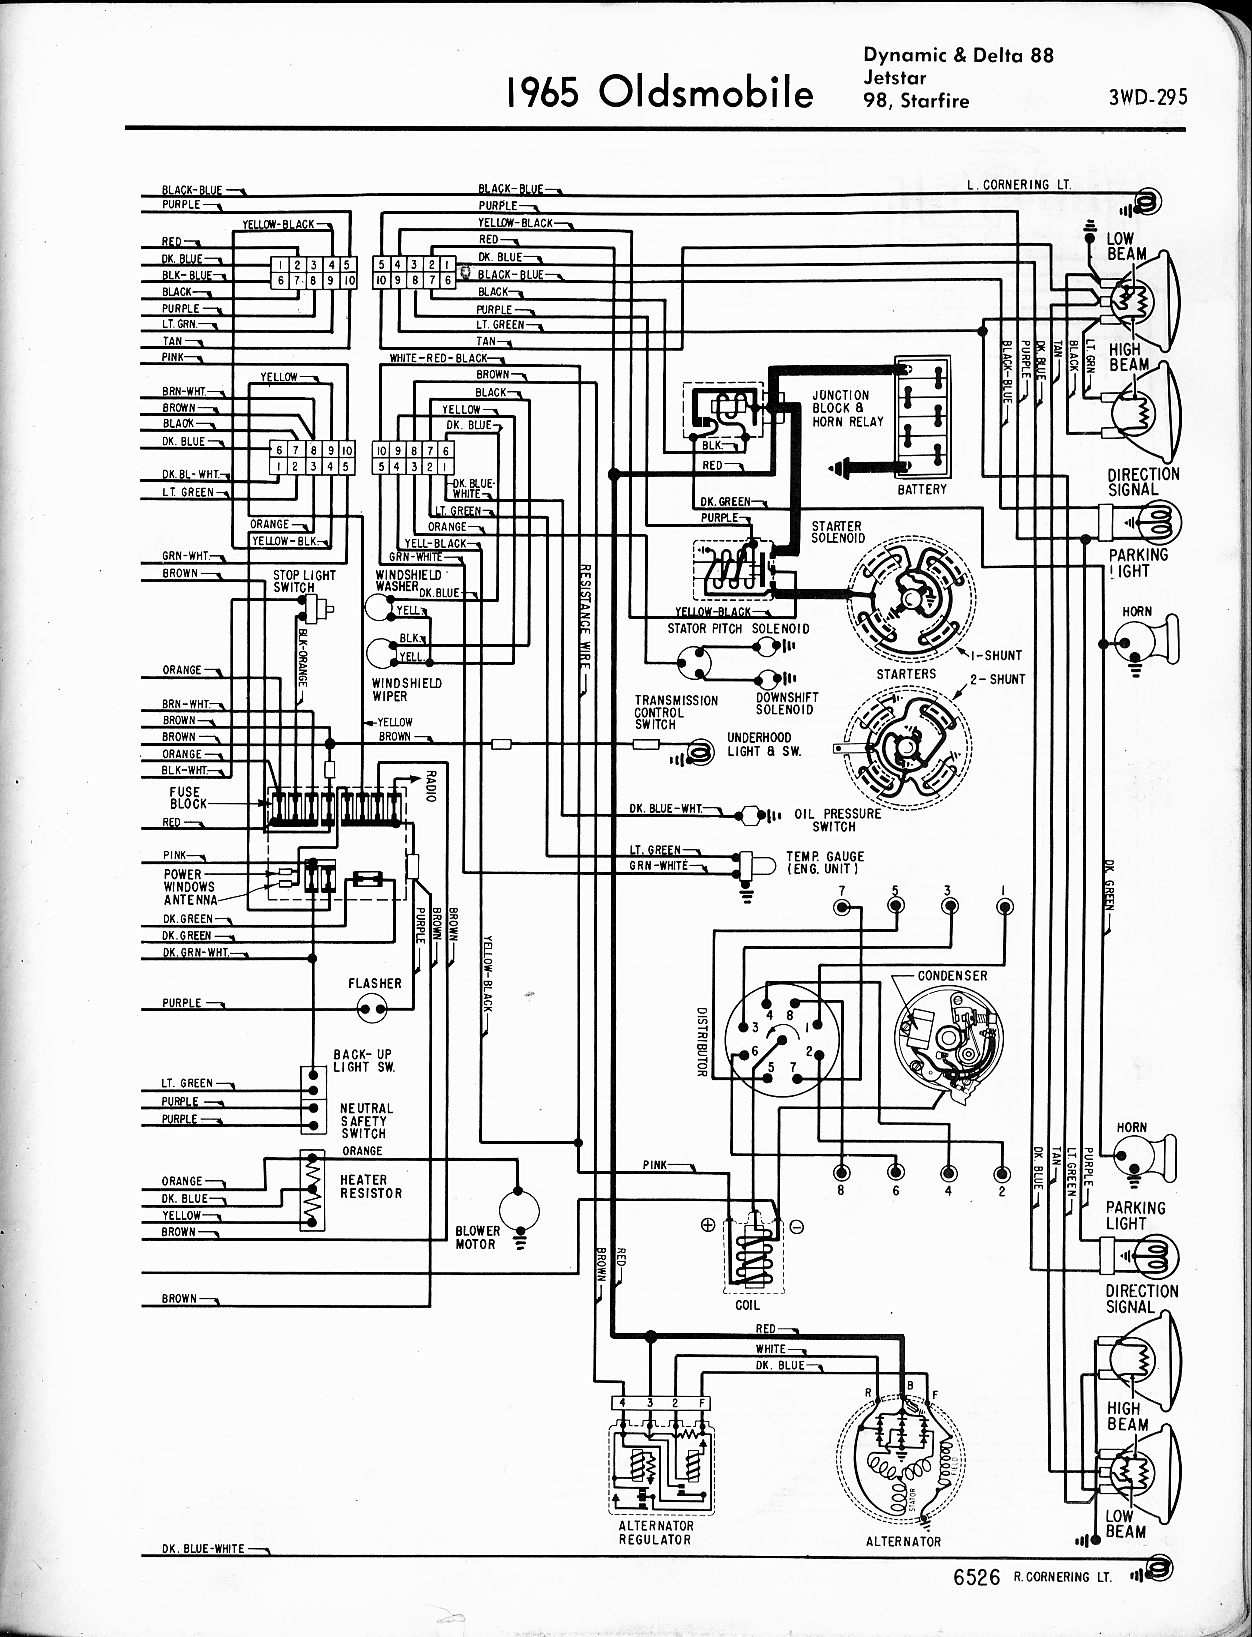 MWire5765 295 oldsmobile wiring diagrams the old car manual project 1967 olds 442 wiring diagram at gsmx.co